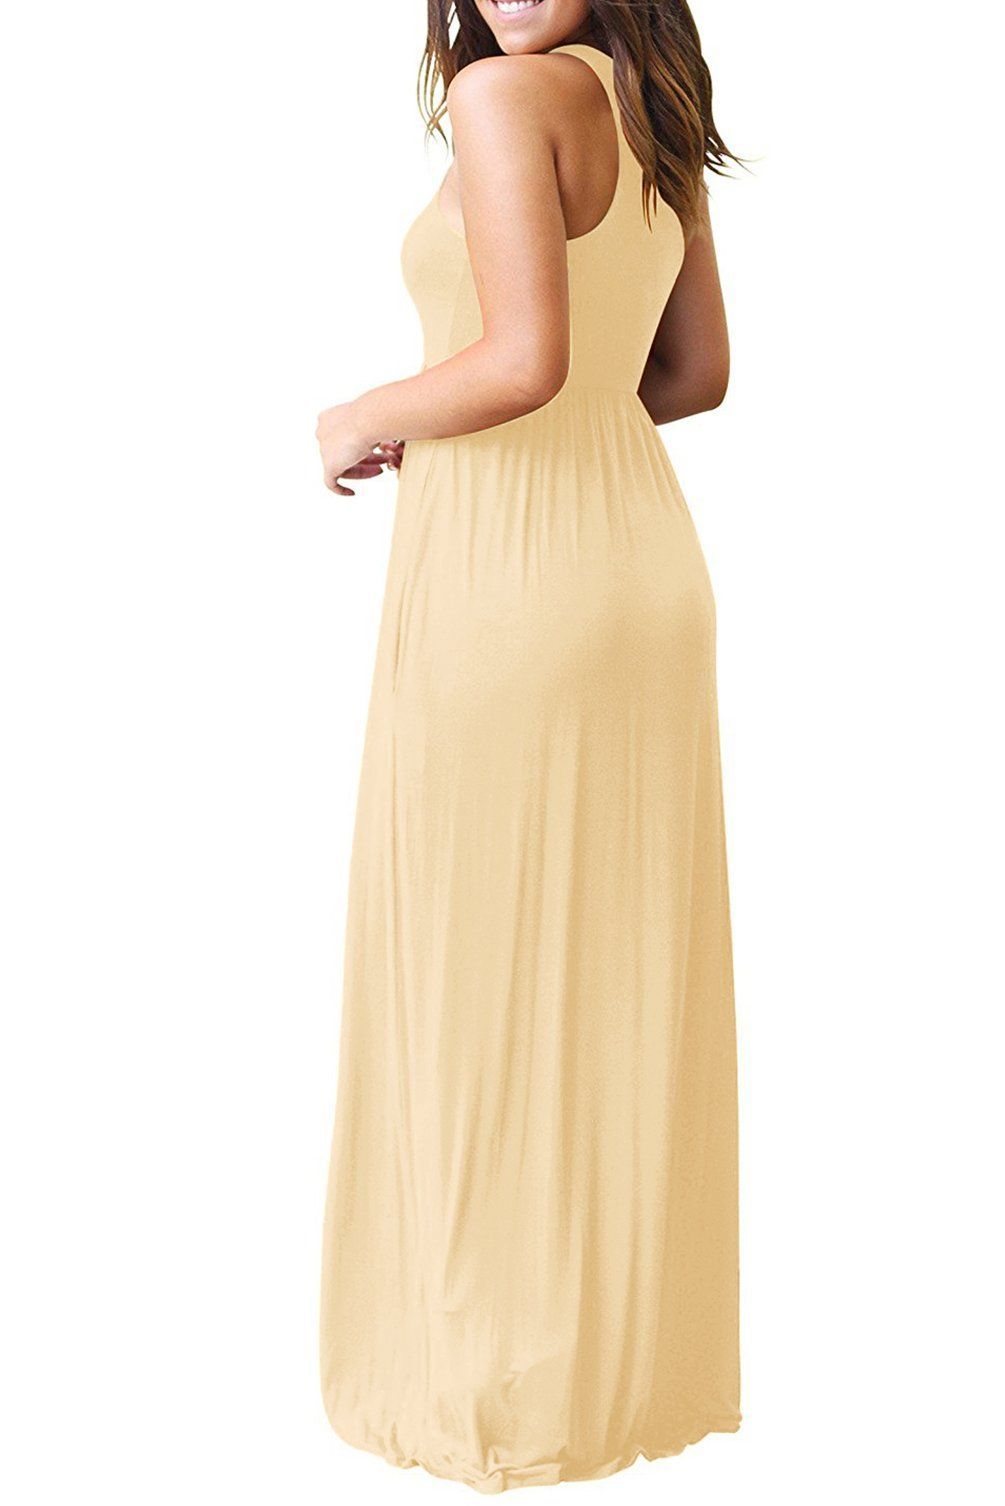 Women maternity clothes hervive sleeveless maxi dress with pockets